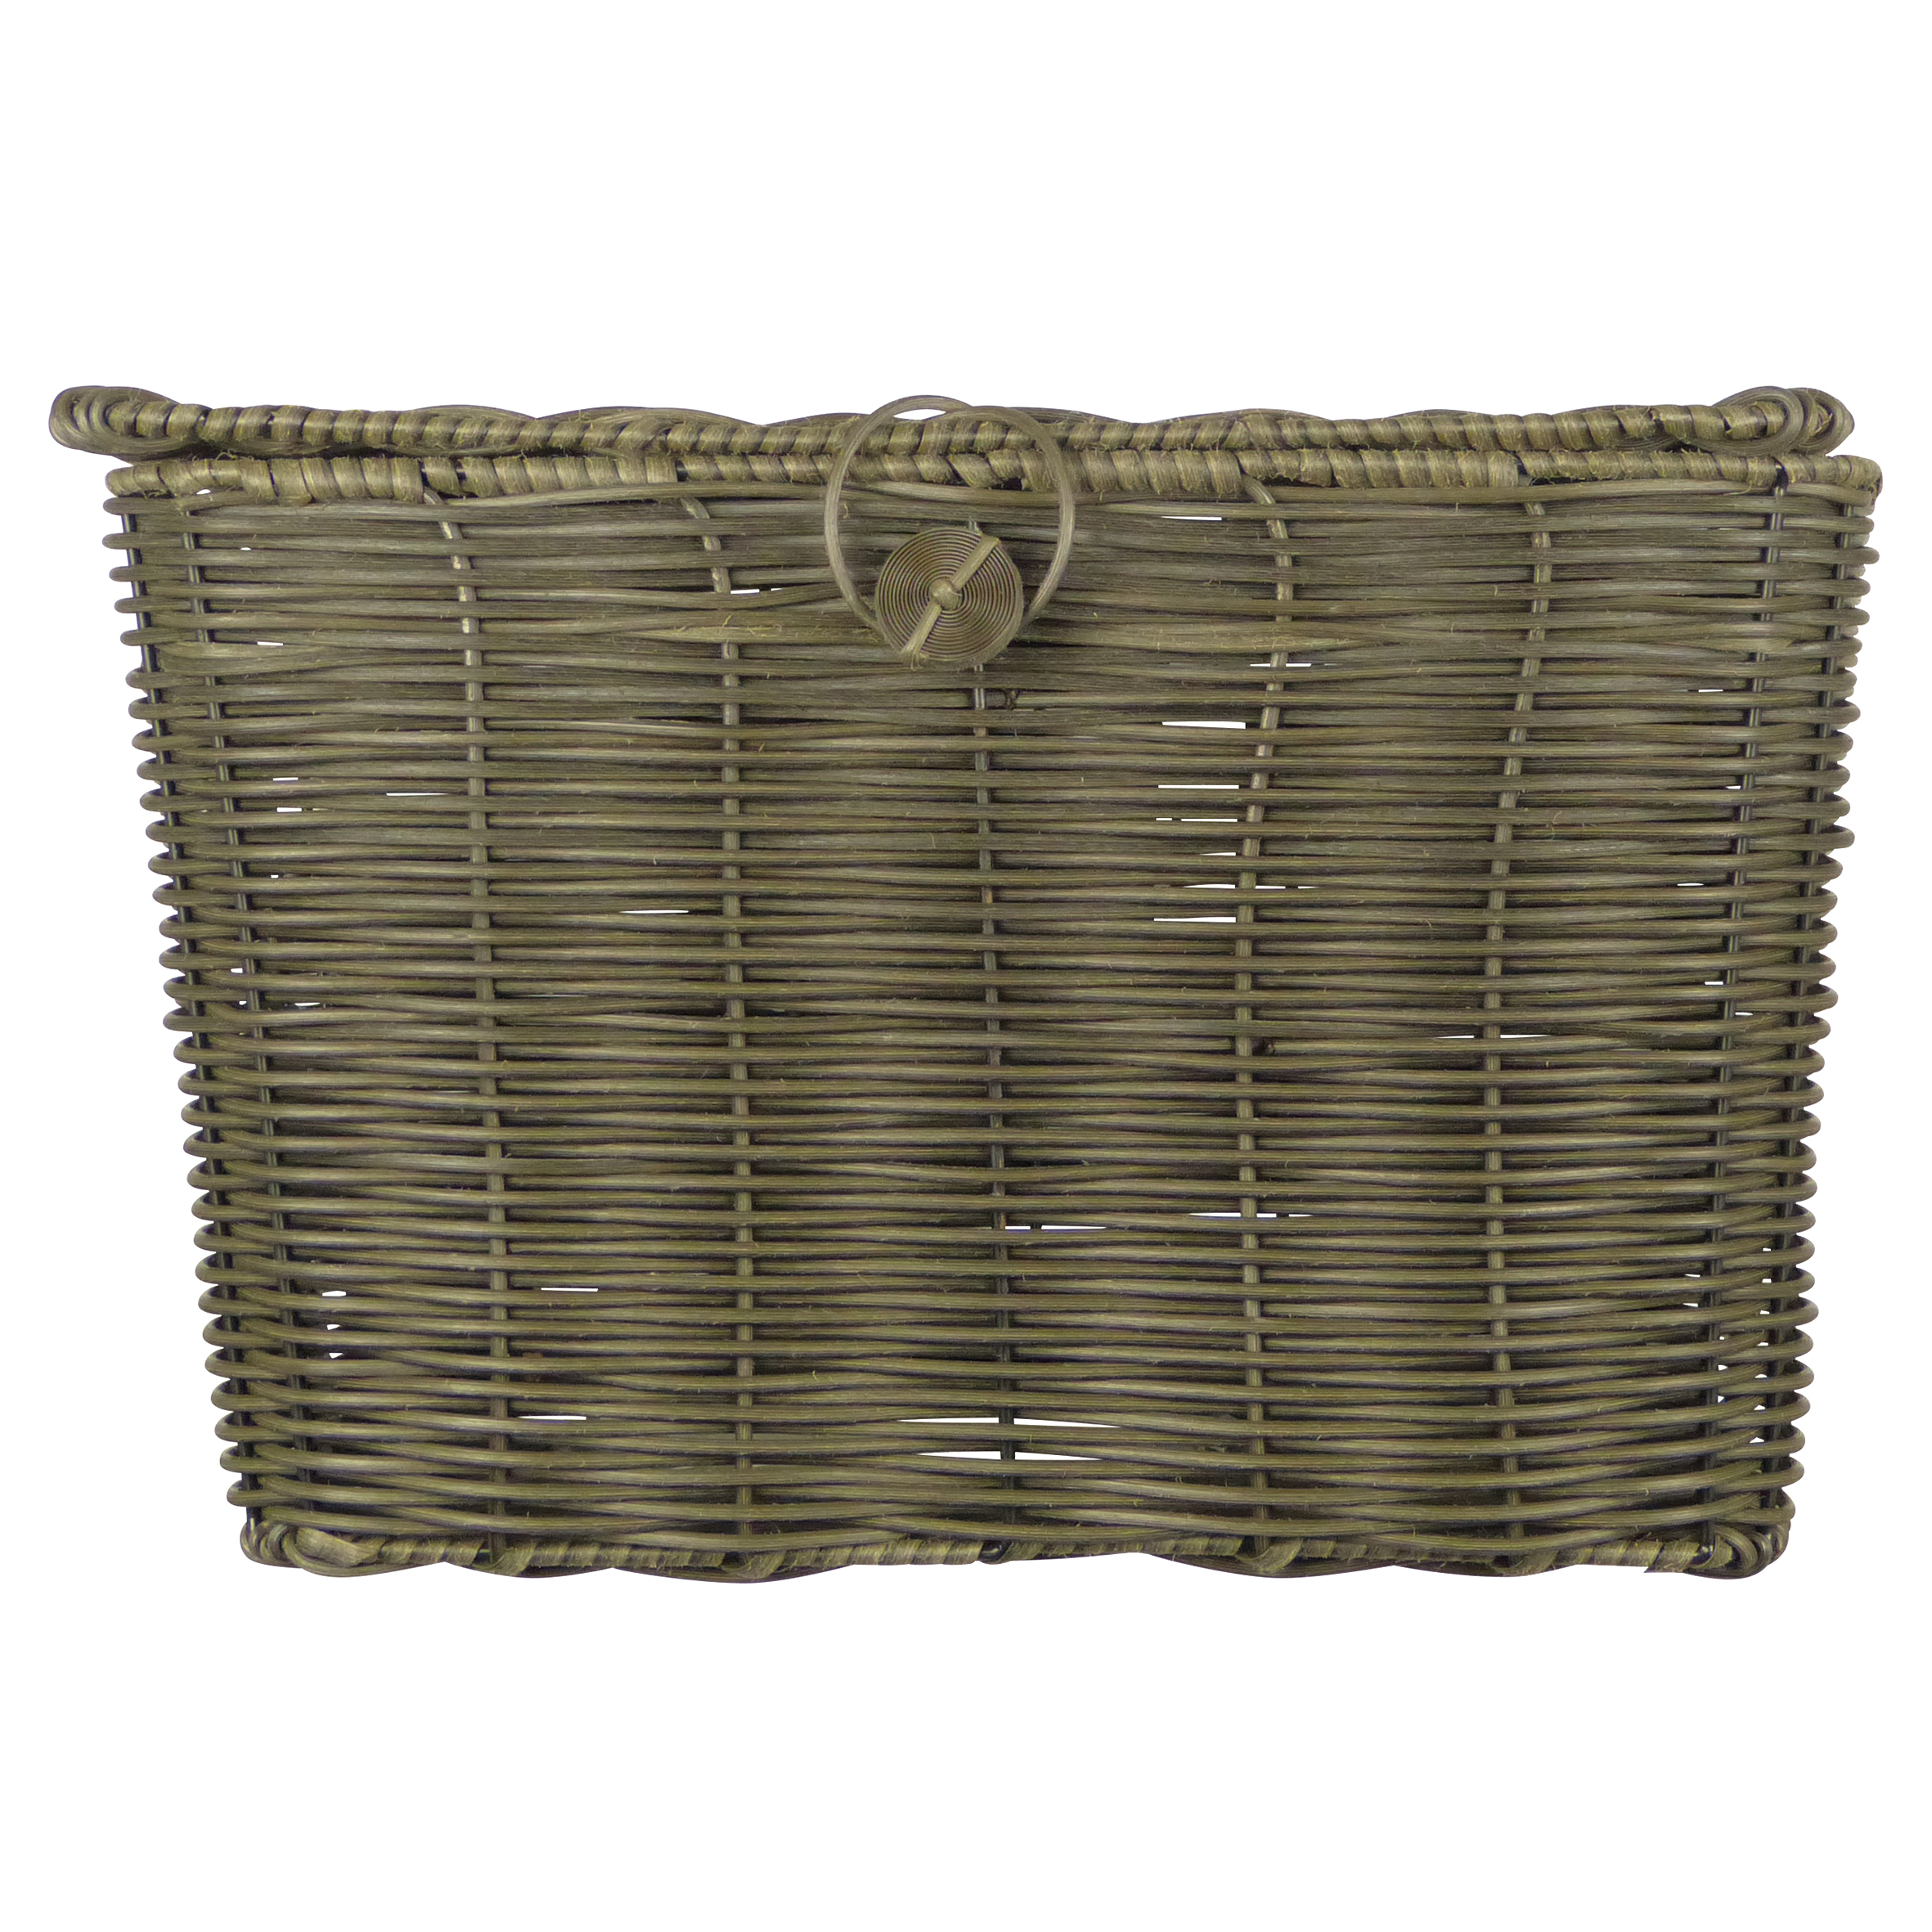 298d779caee Dyto Fietsmand Wicker Outdoor incl. Beve (5011073)